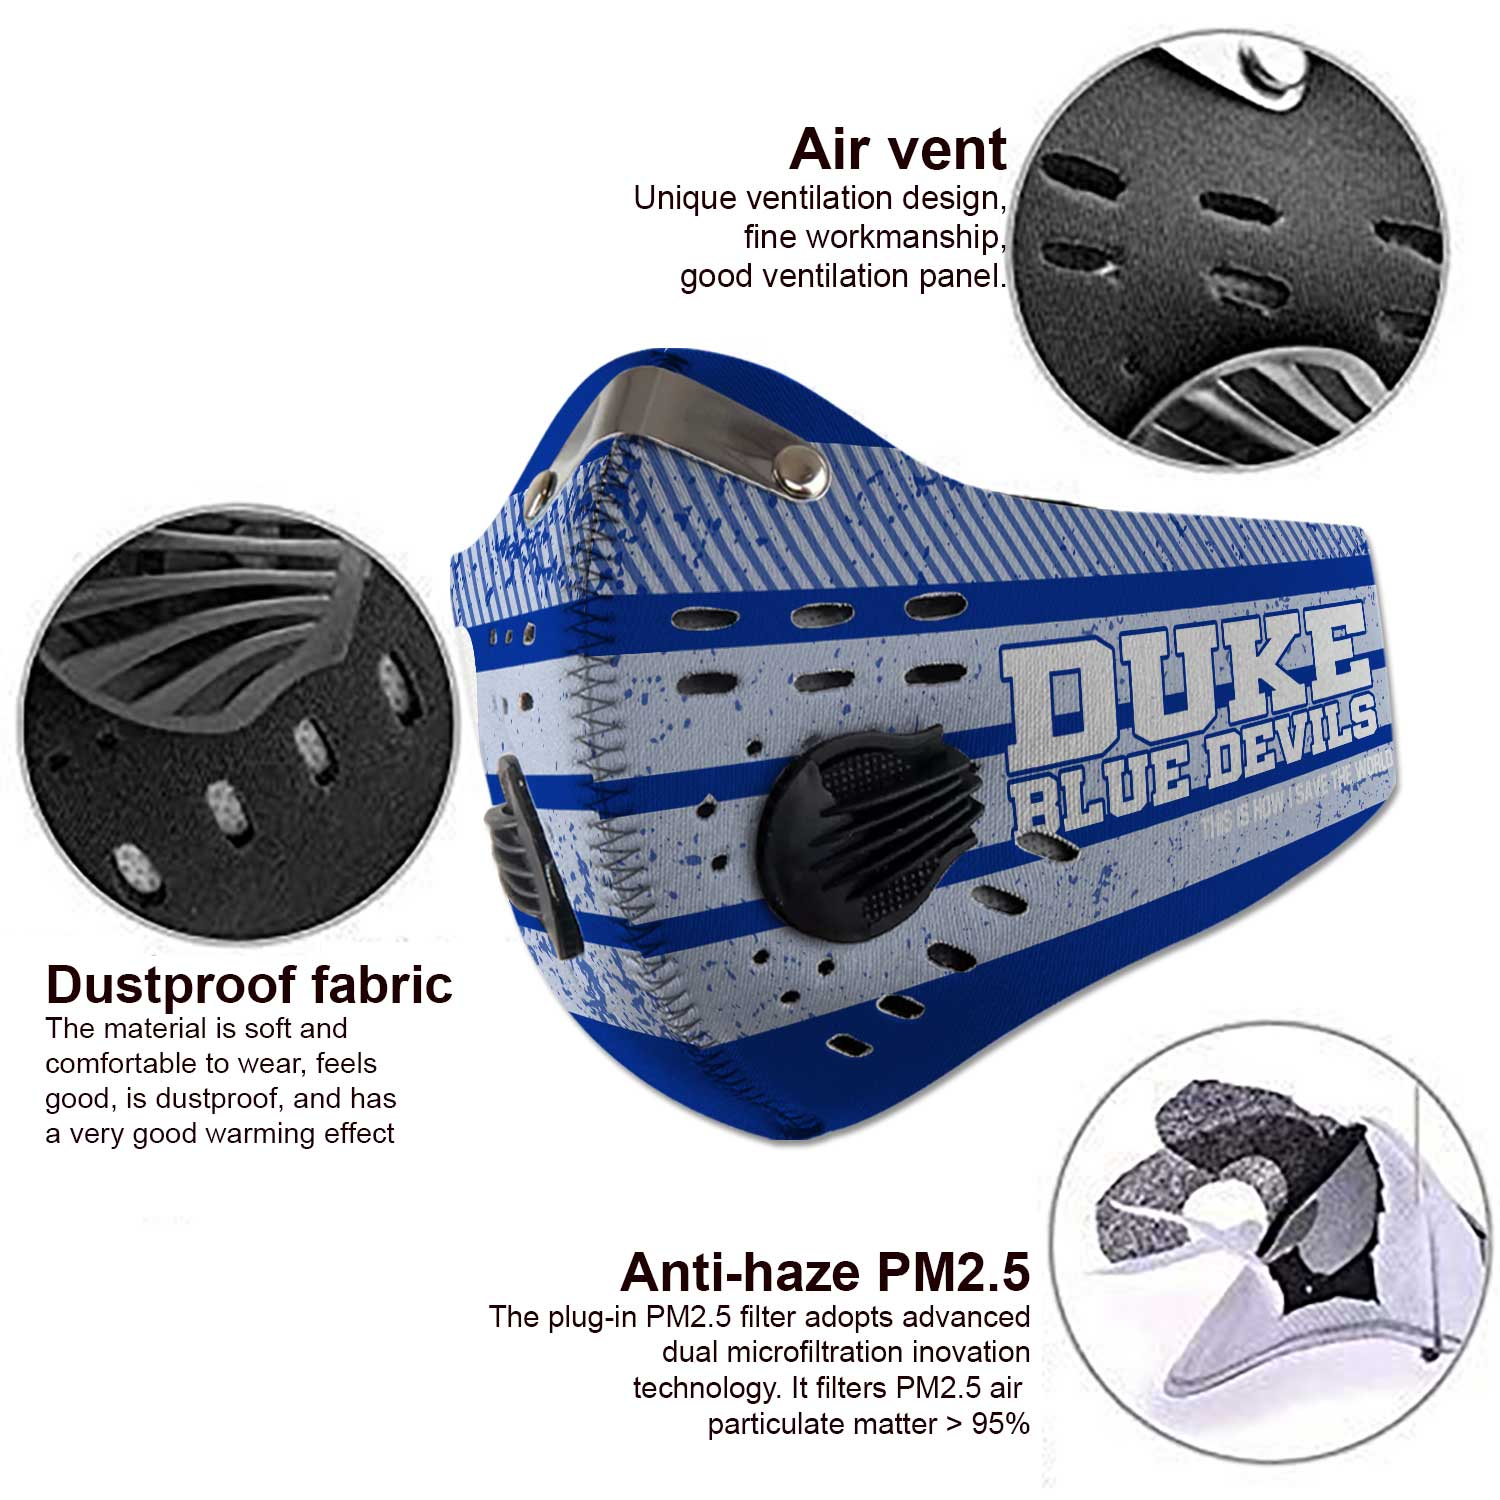 Duke blue devils men's basketball this is how i save the world face mask 4